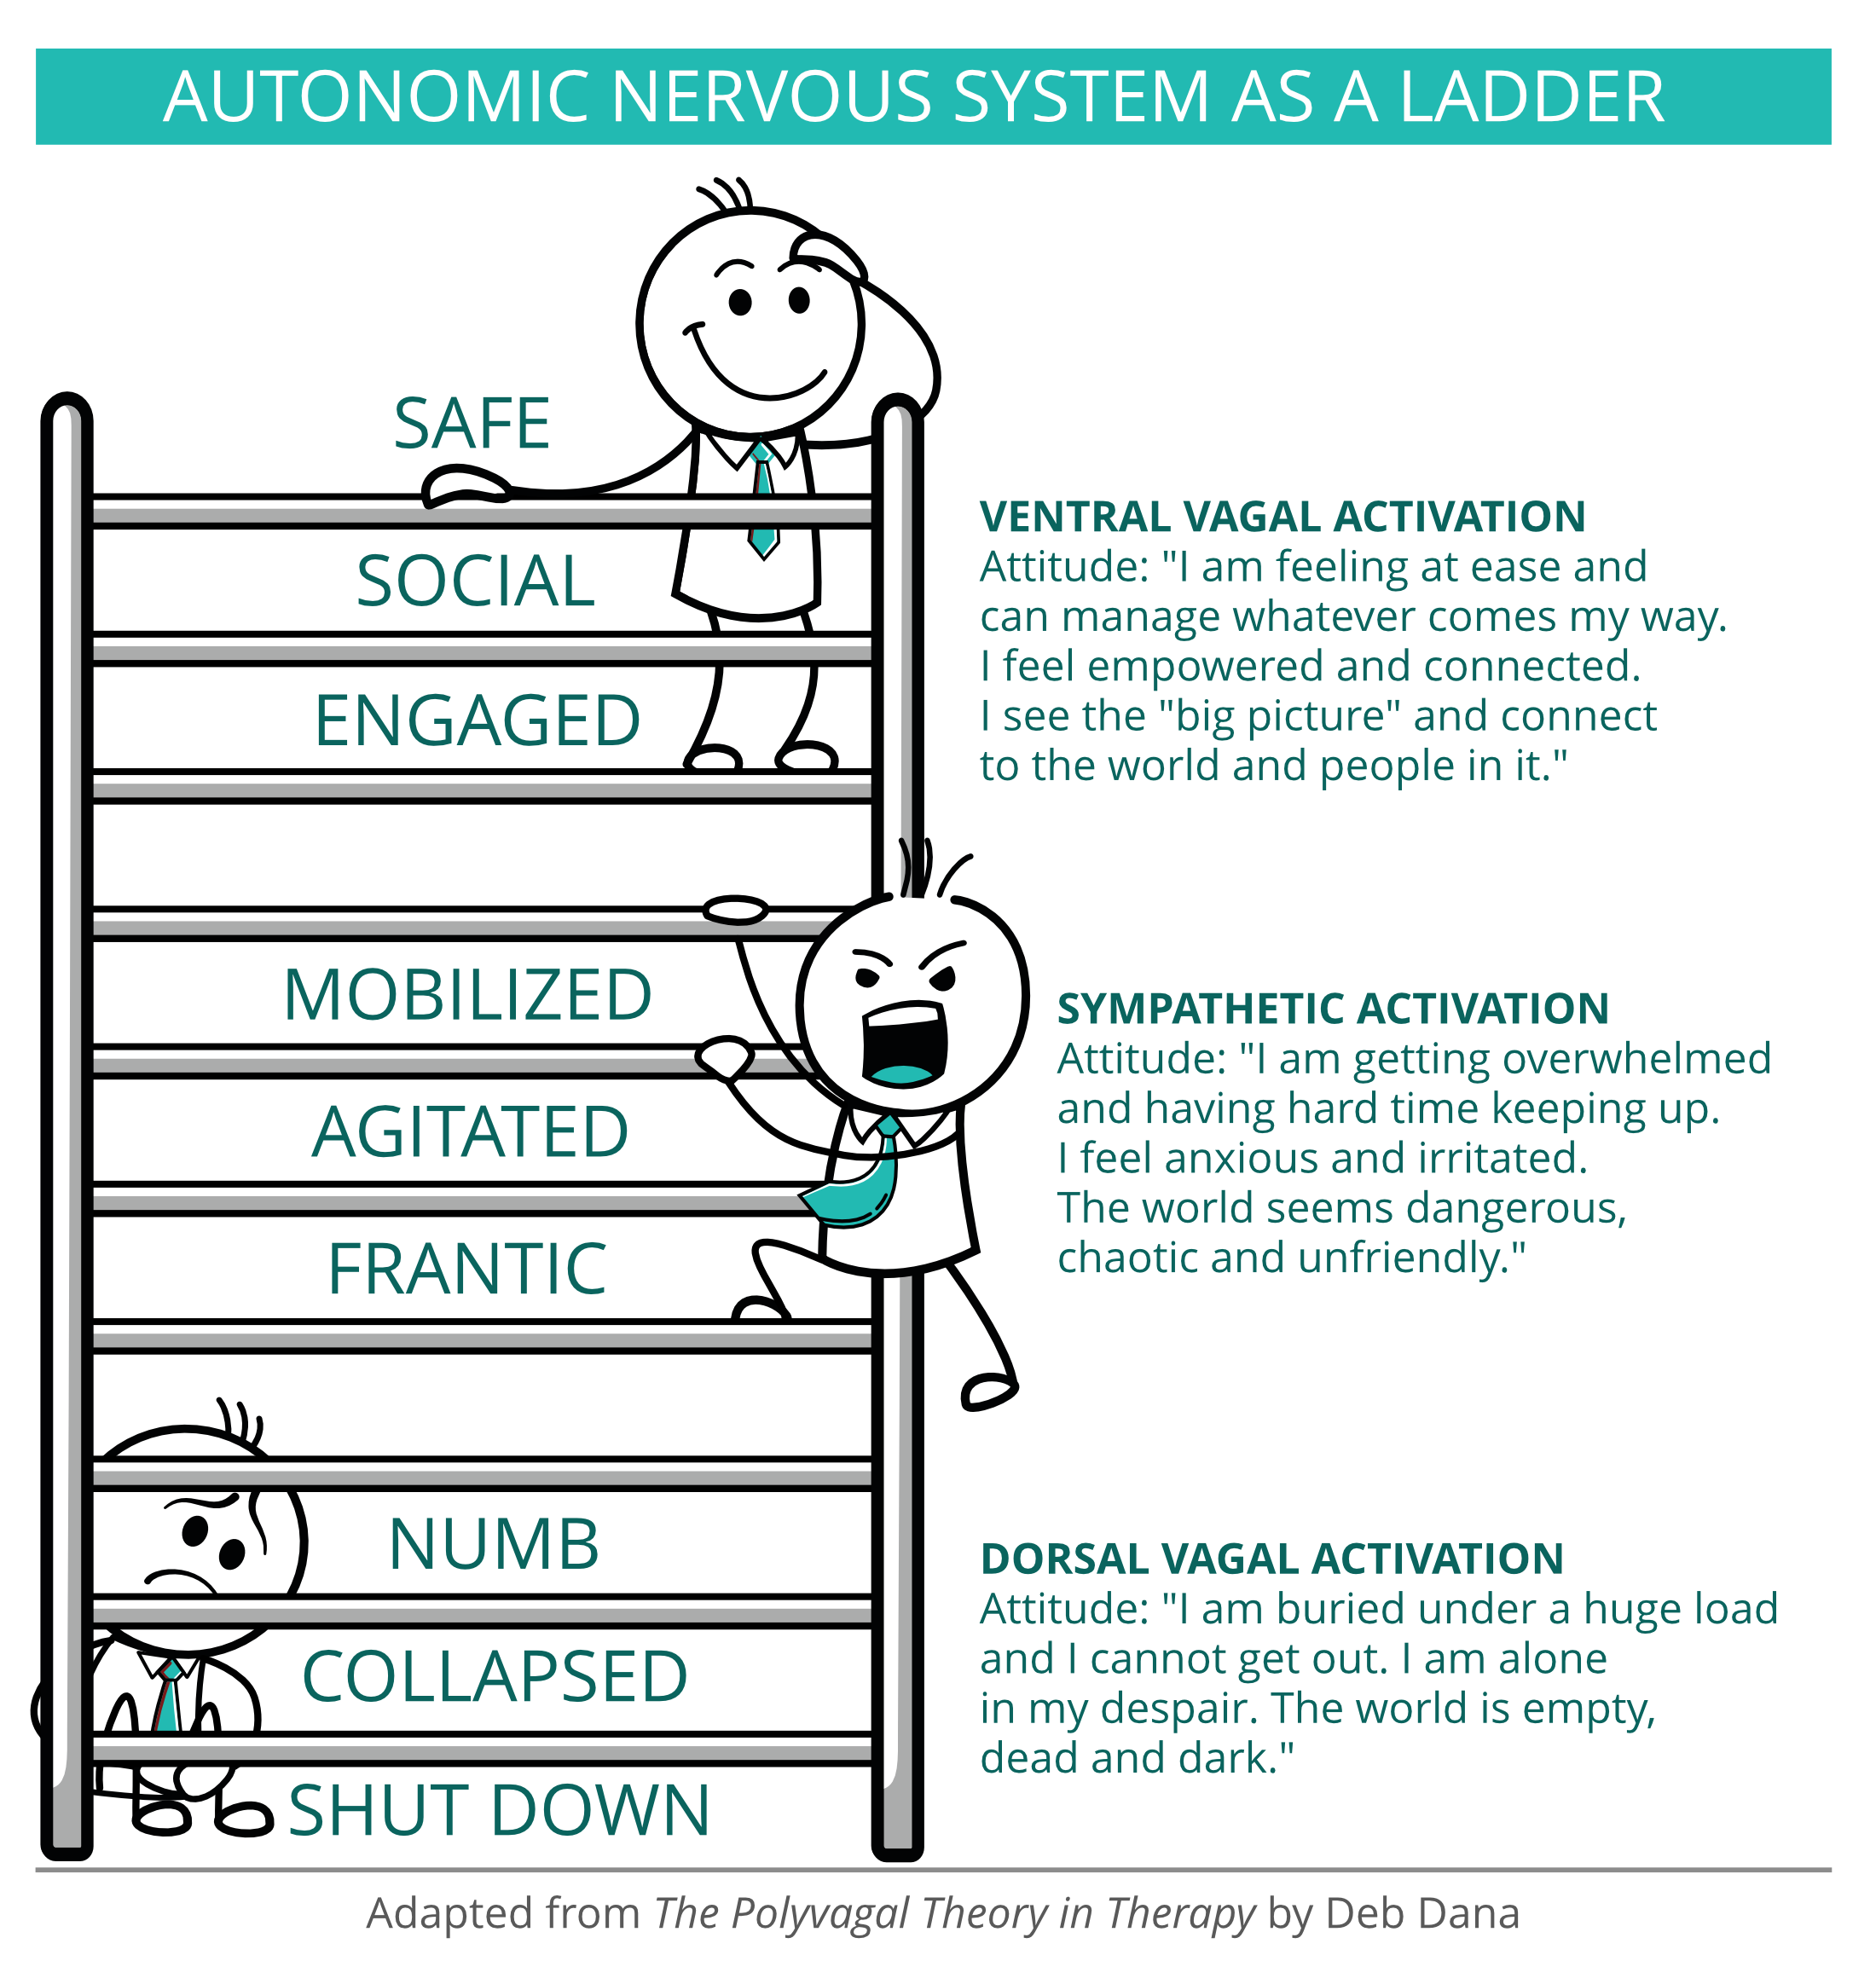 Autonomic nervous system as a ladder